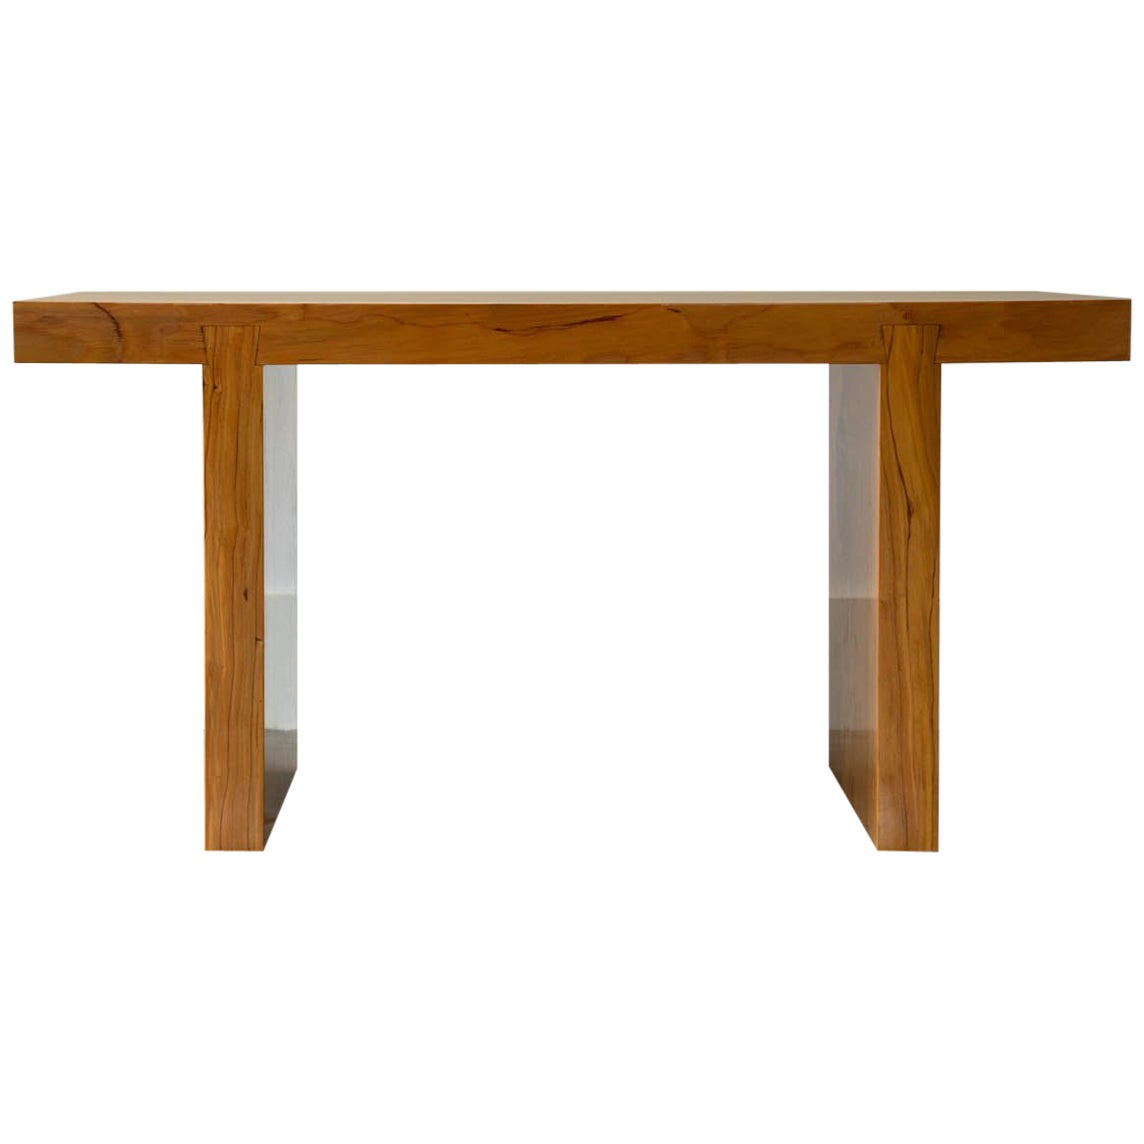 Asian Inspired Solid Wood Bench in Hemlock for Entry Bench or End of Bench Bench